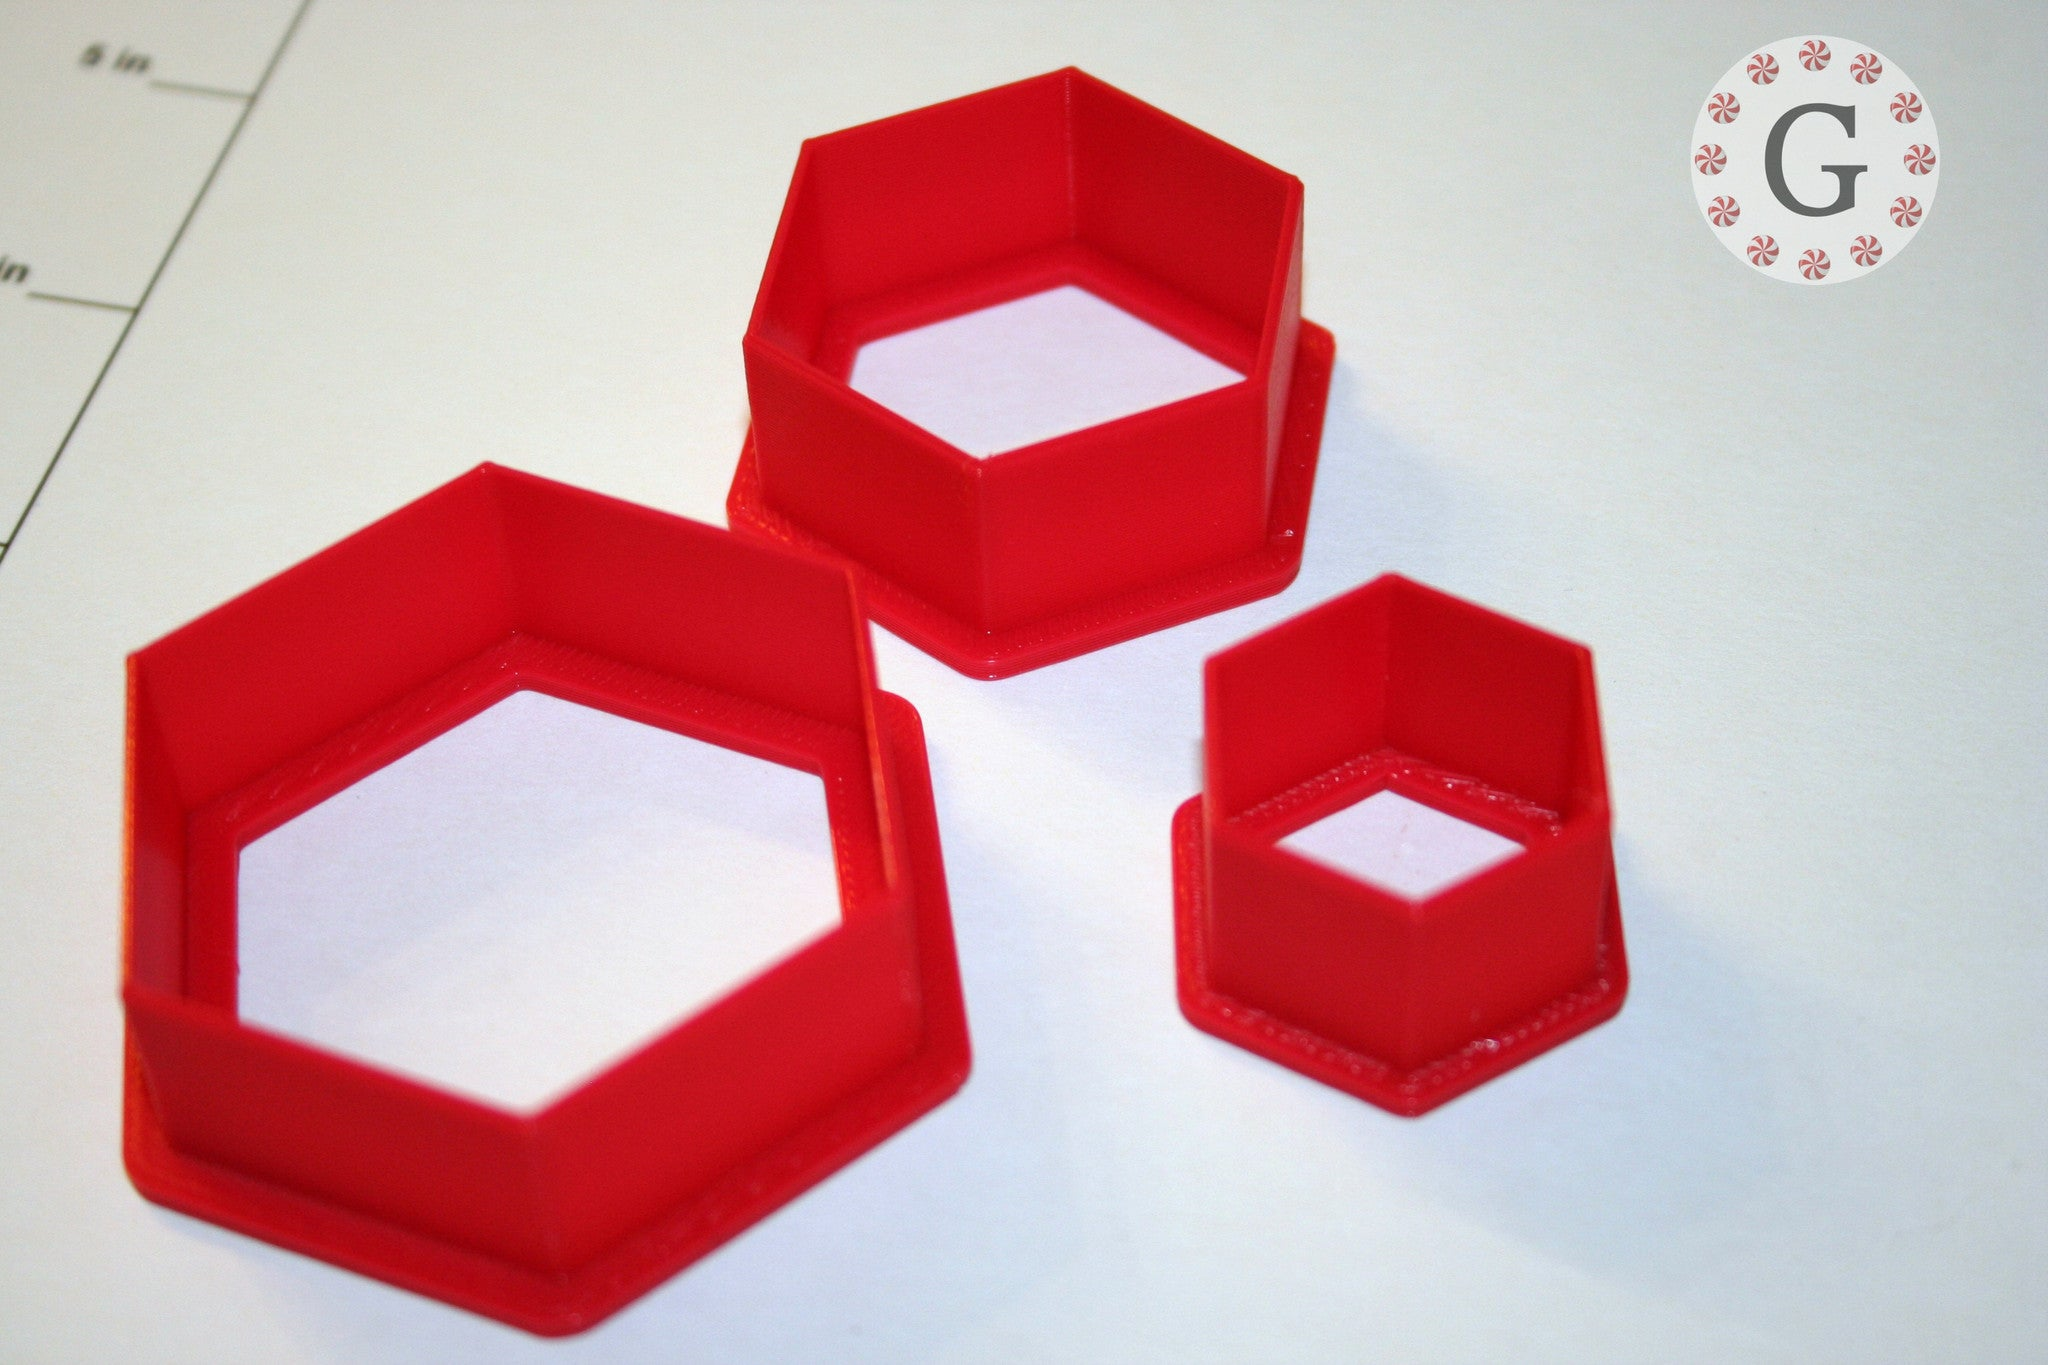 Hexagon Cookie Cutter - 3 Size Options